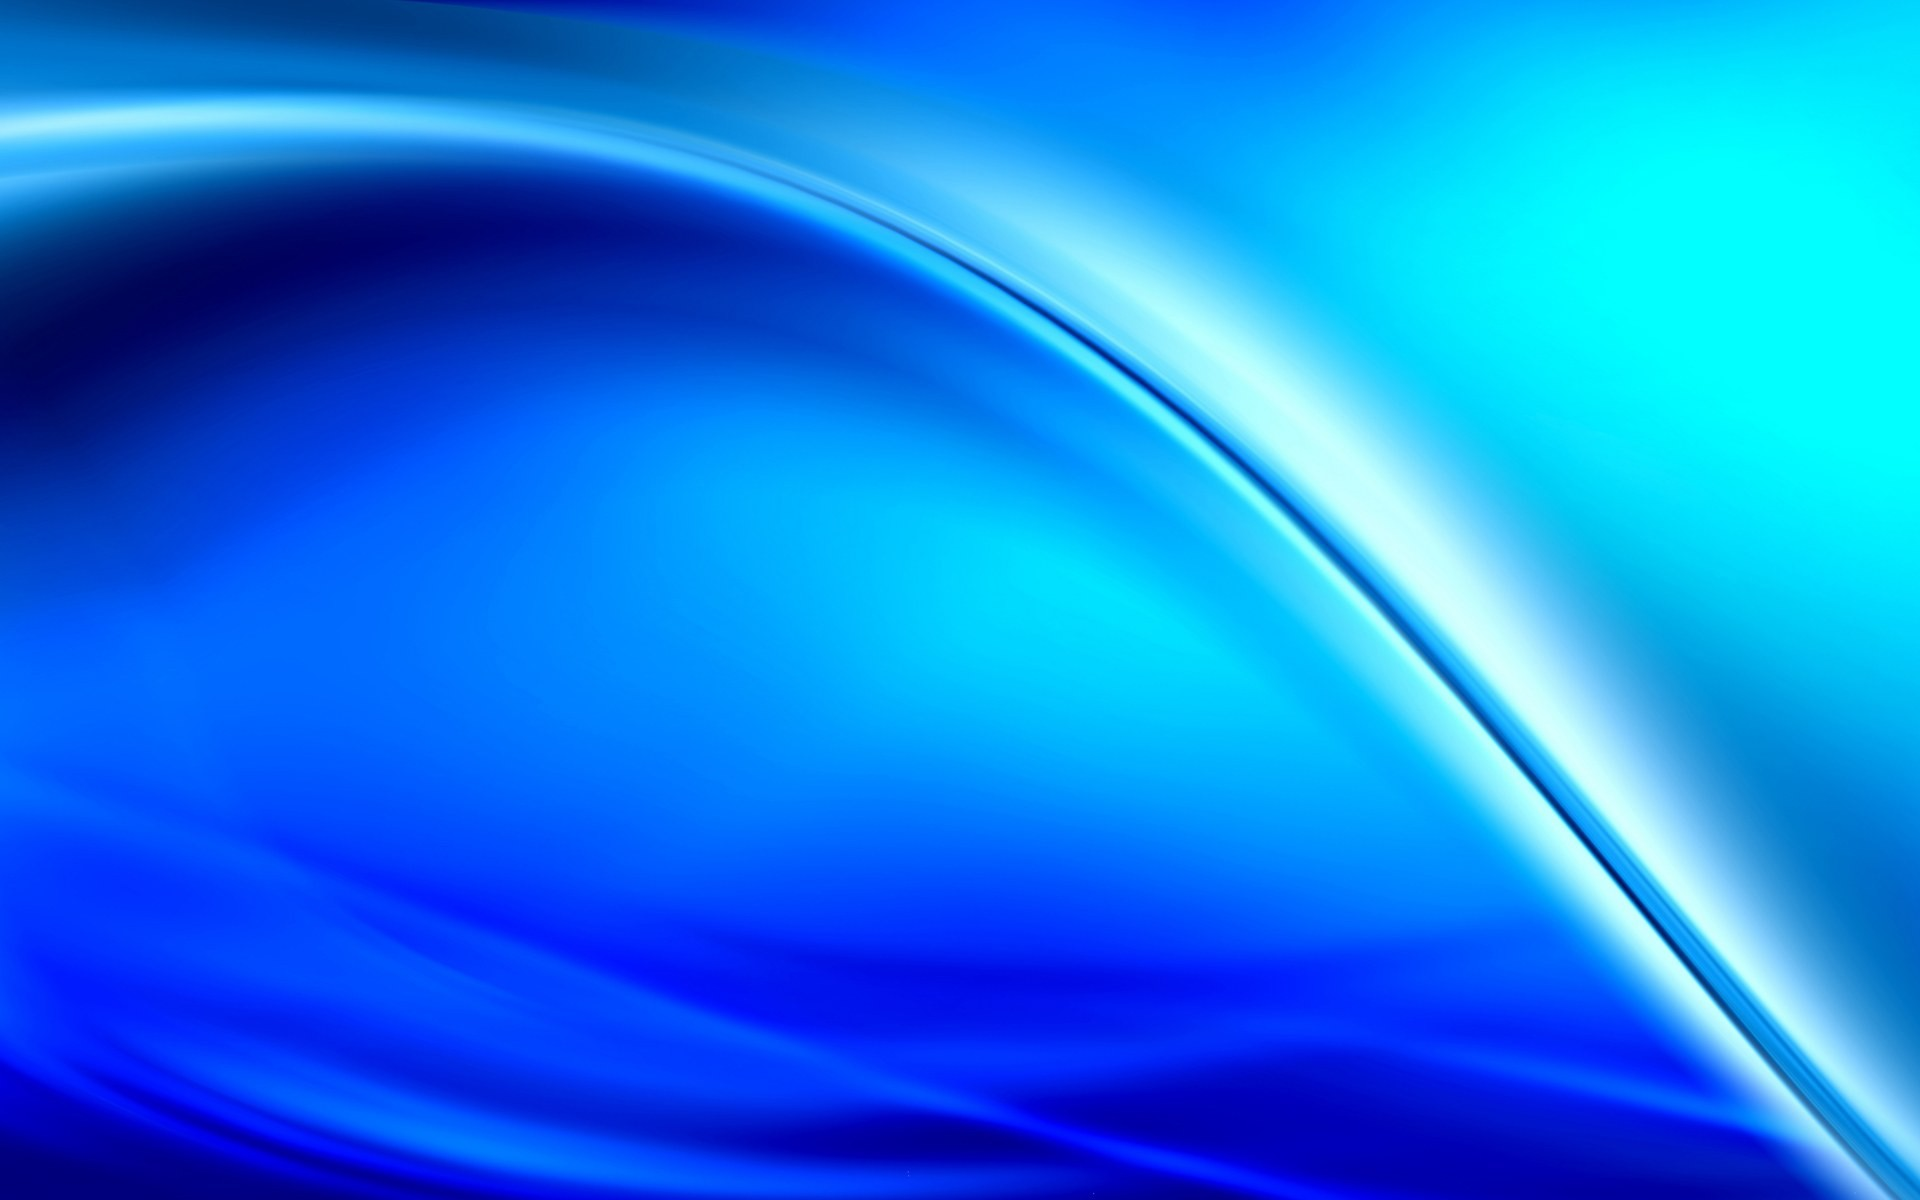 Hd Abstract Blue Background: Bright Blue Wallpaper